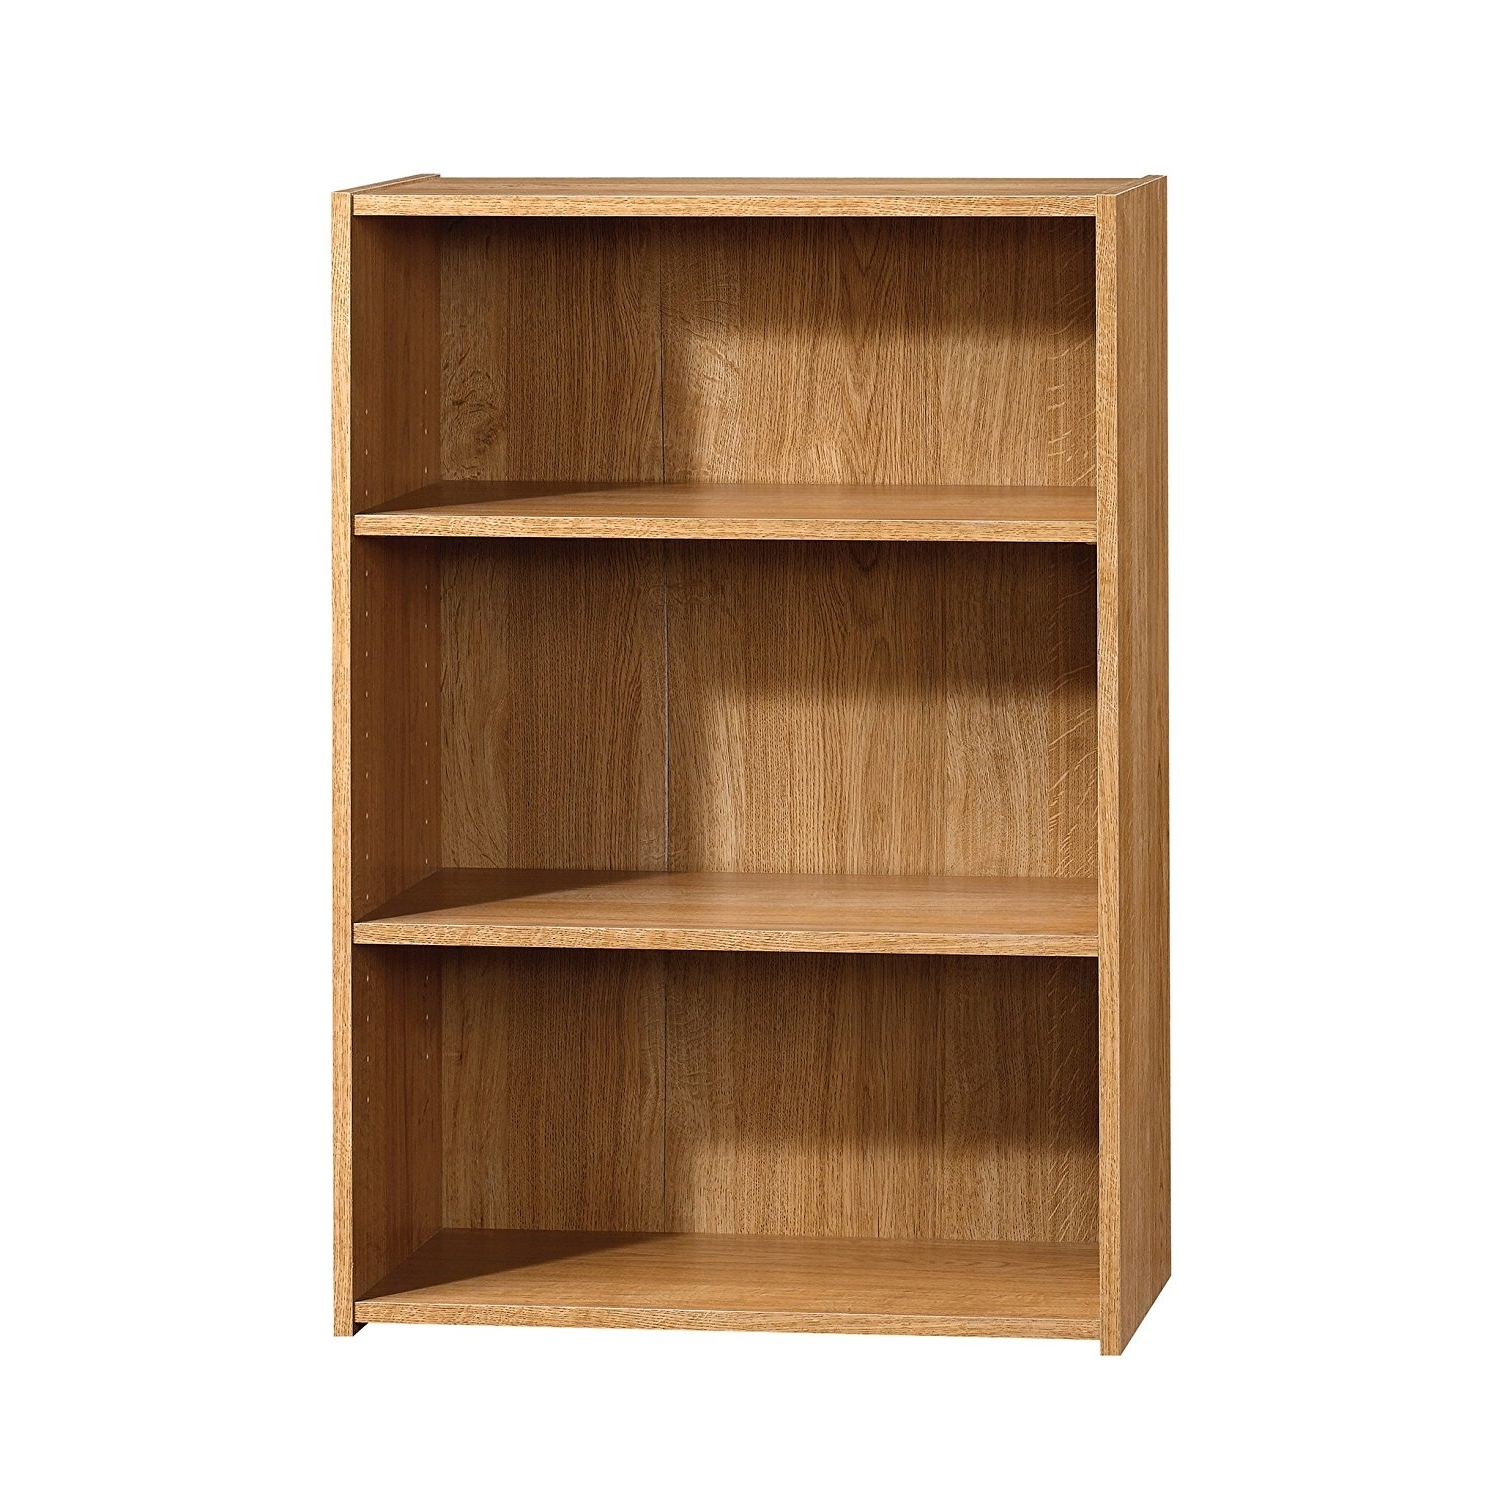 Office Bookcases In Fashionable Bookcases (View 4 of 15)